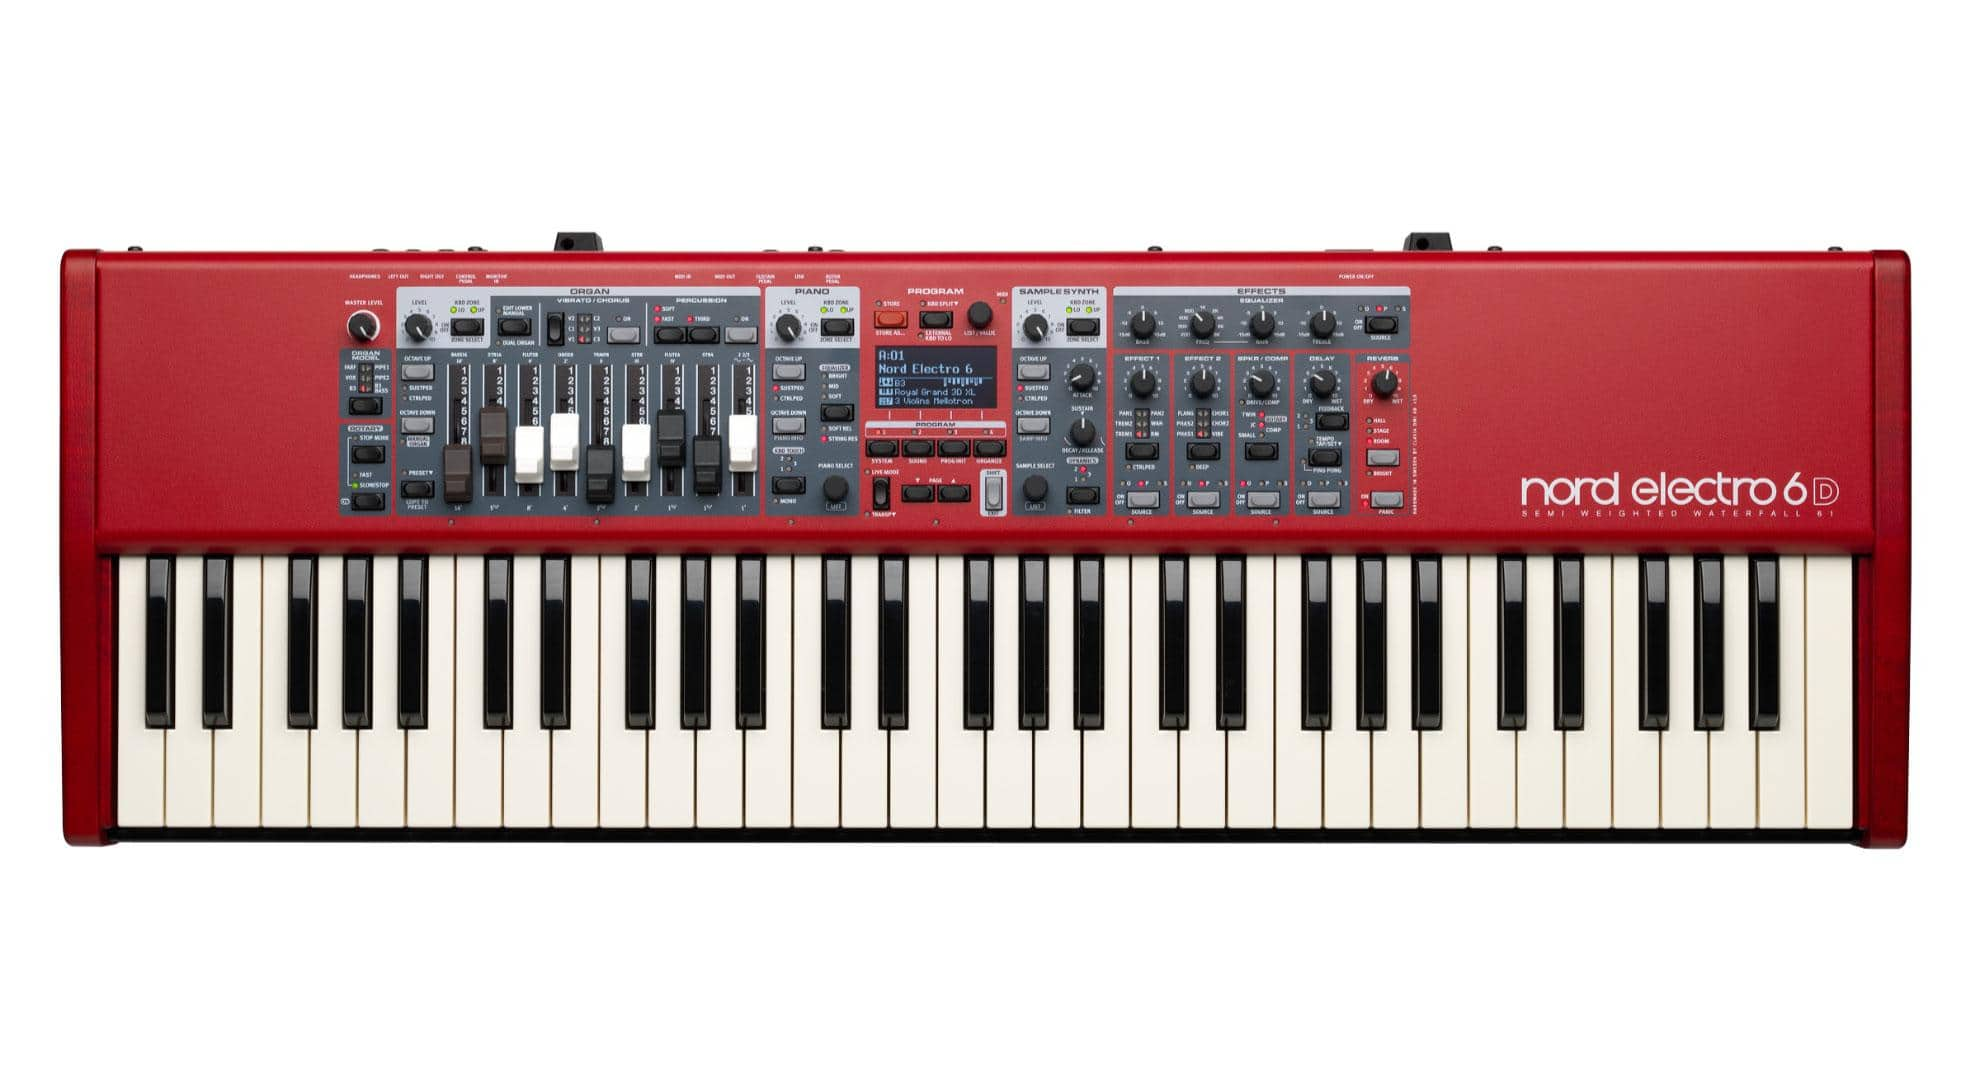 Stagepianos - Clavia Nord Electro 6D 61 - Onlineshop Musikhaus Kirstein